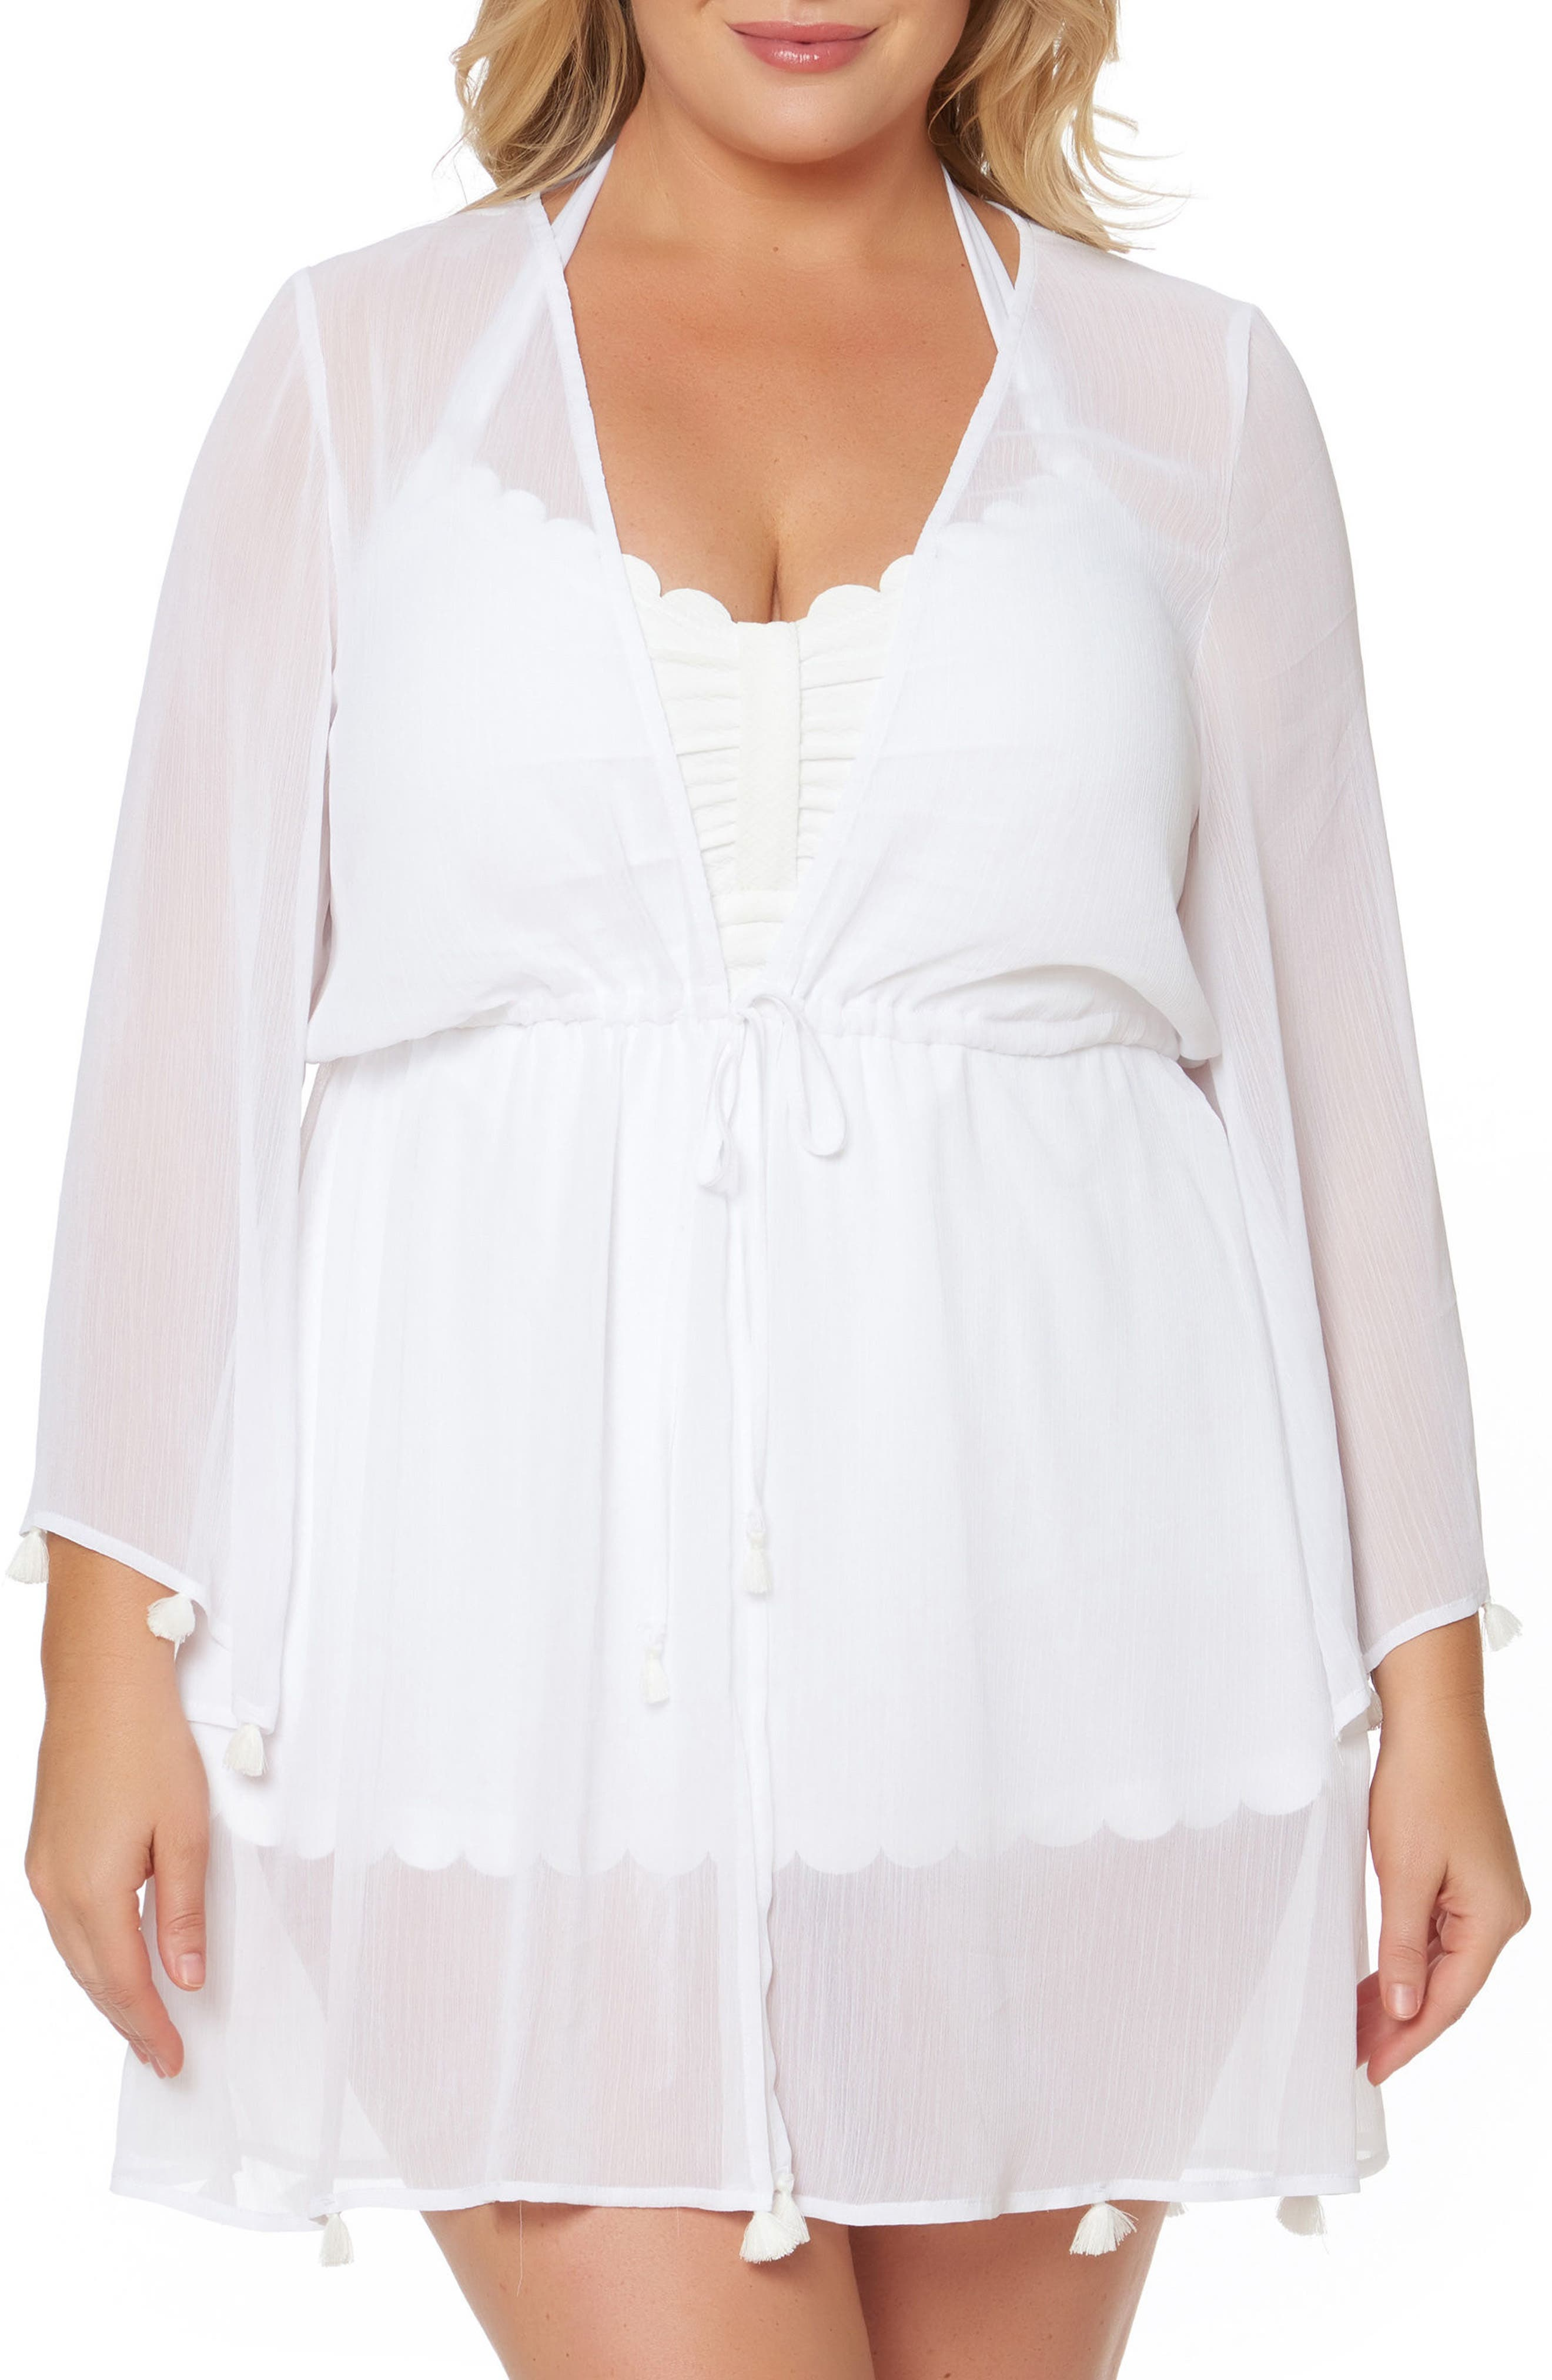 Chiffon Cover-Up Kimono,                             Main thumbnail 1, color,                             White